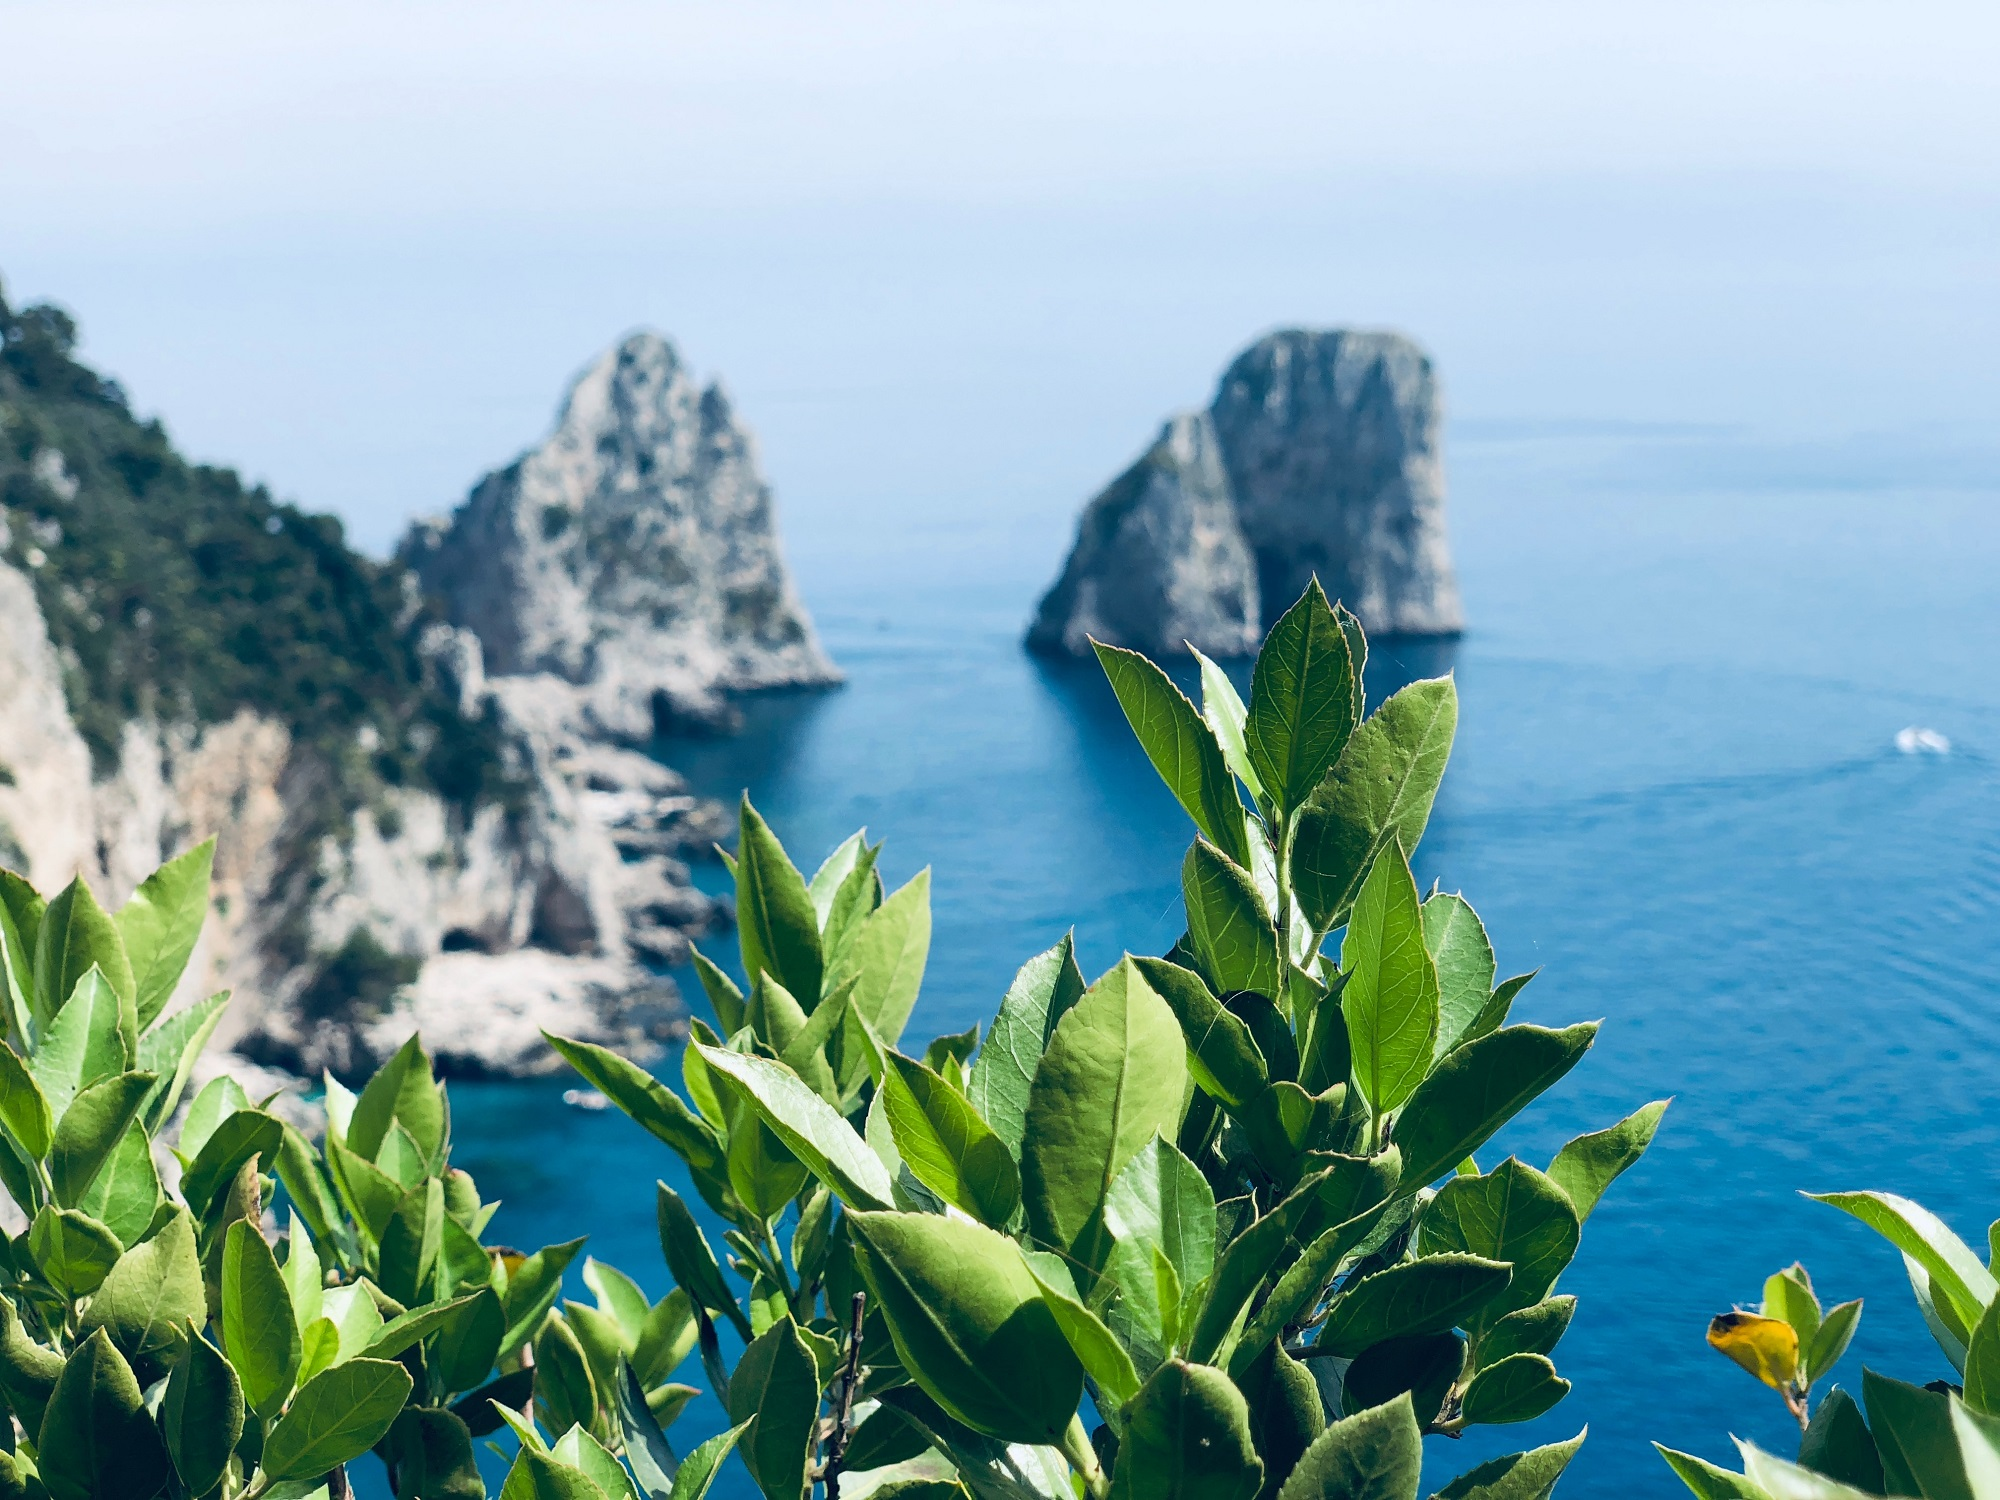 What to see in a day on the Island of Capri?